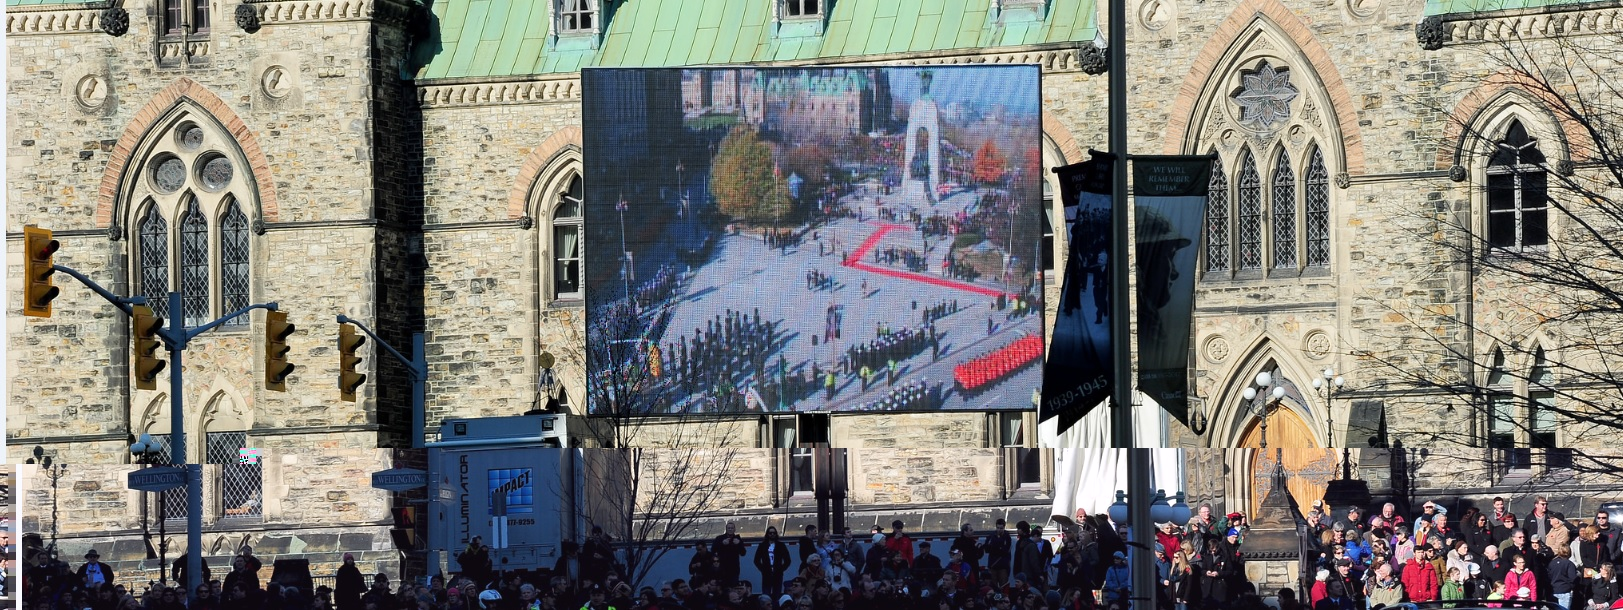 Large Viewing Screens for Remembrance Day Ceremony